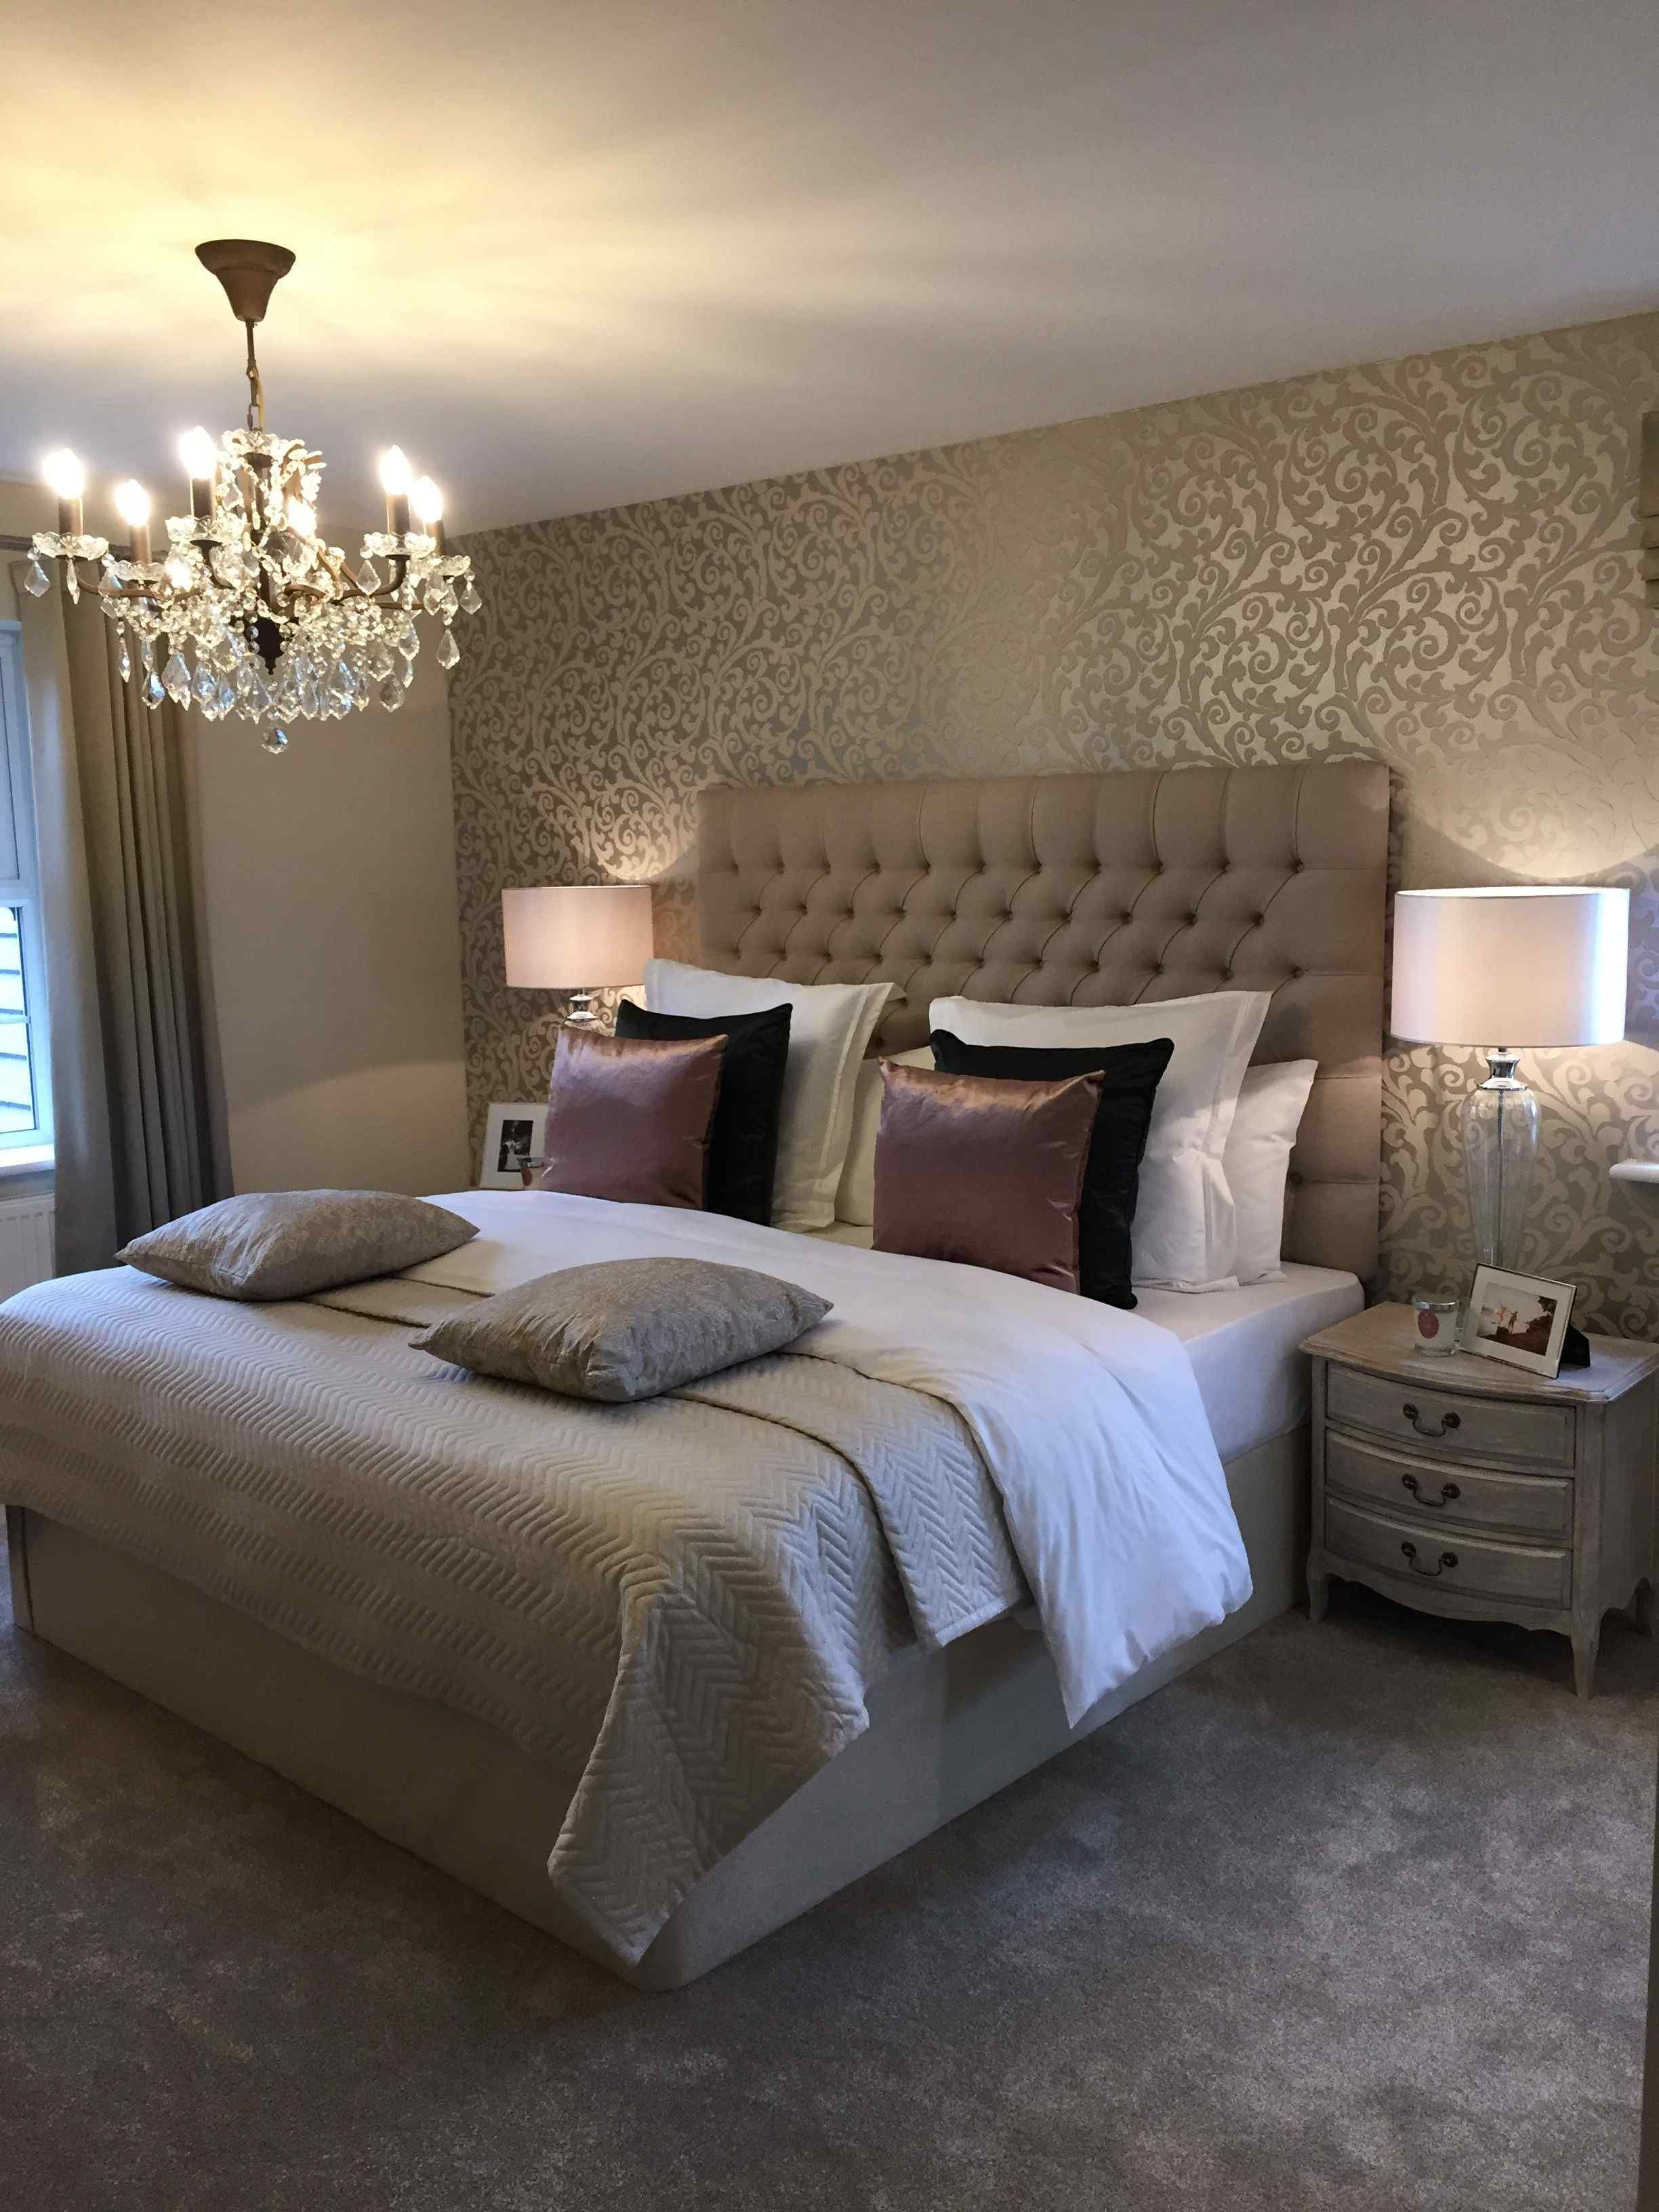 Most Popular Ways To Inspirational First Home Ideas Decor Couples